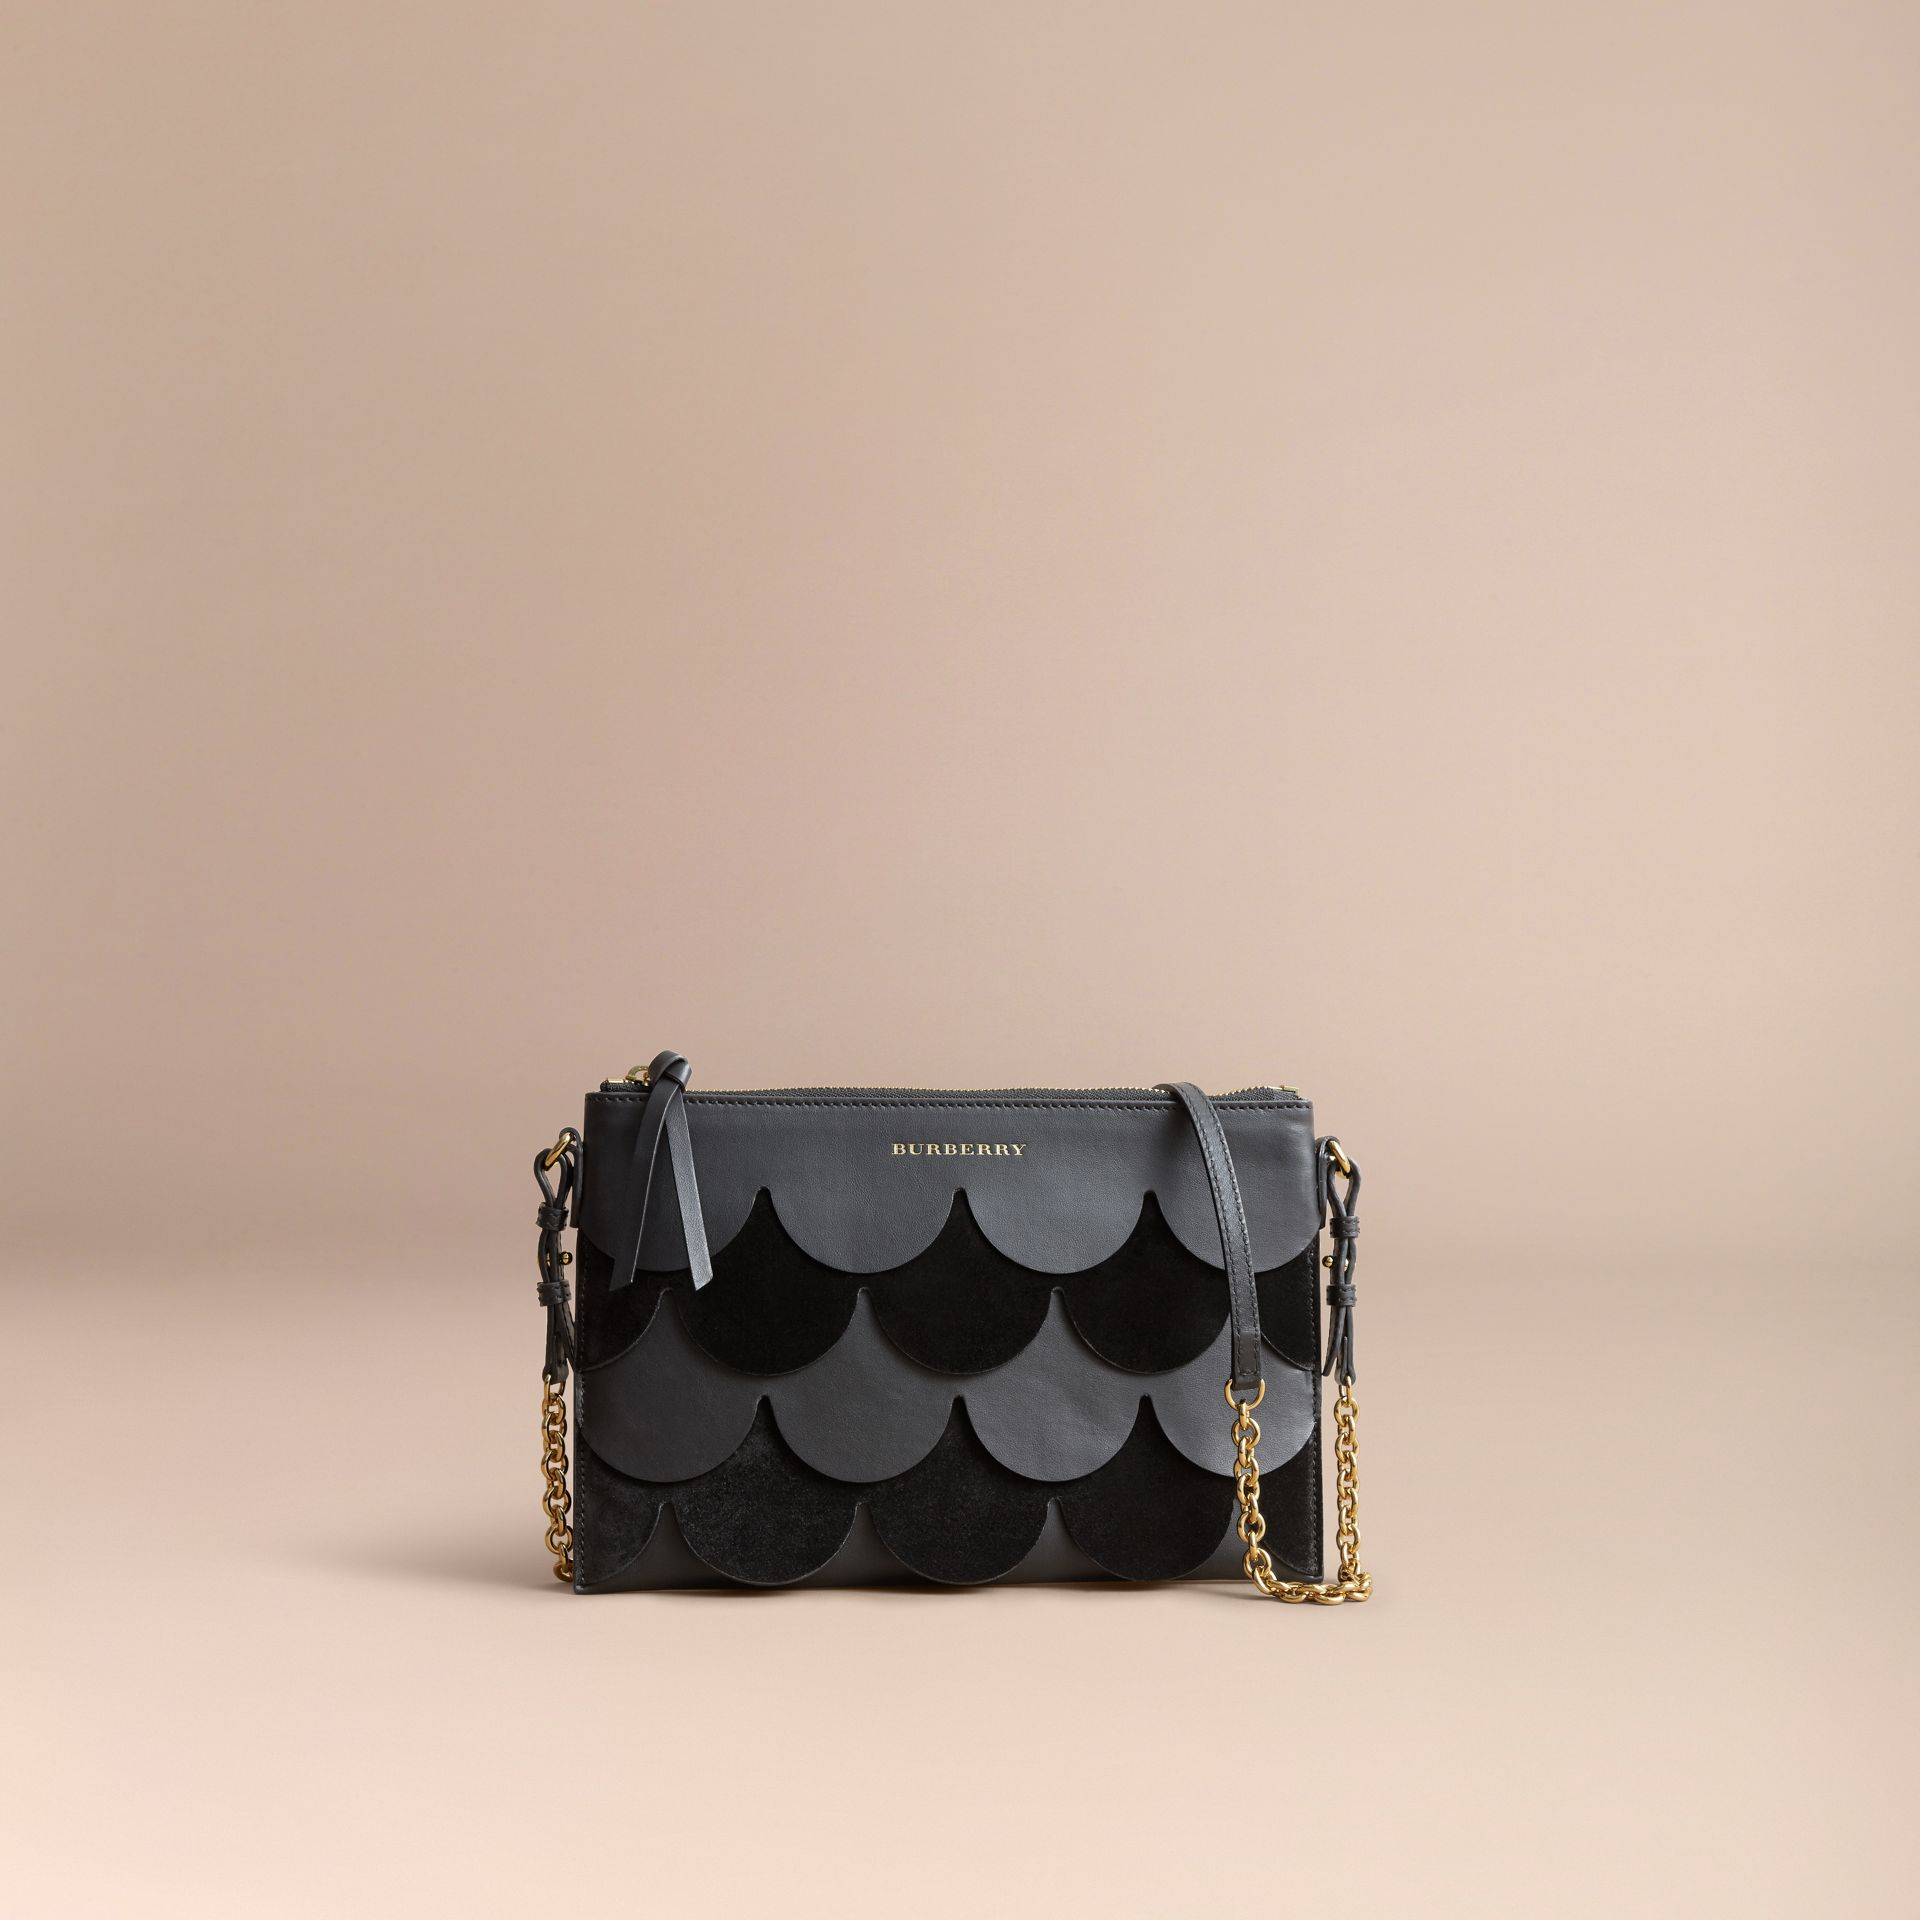 Two-tone Scalloped Leather and Suede Clutch Bag in Black - Women | Burberry - gallery image 8